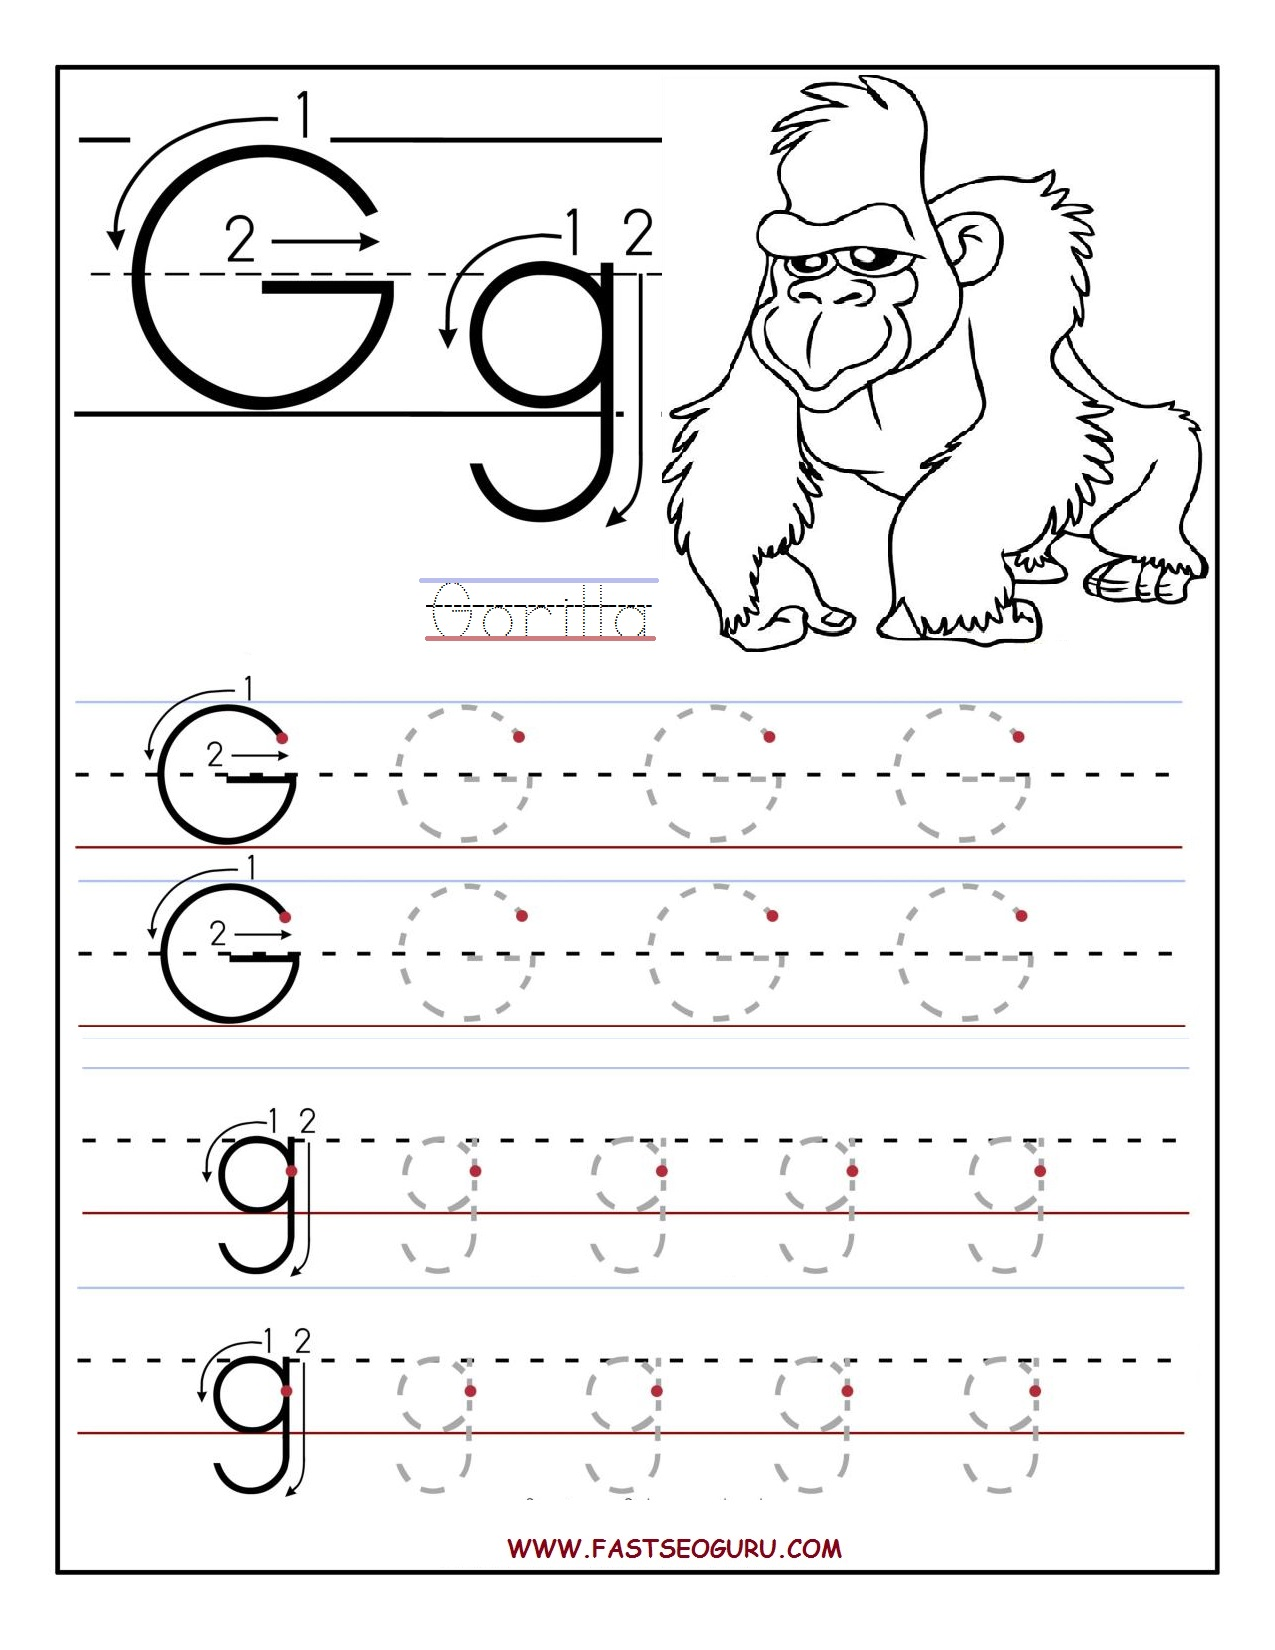 picture relating to Printable Letter G named Printable letter G tracing worksheets for preschool